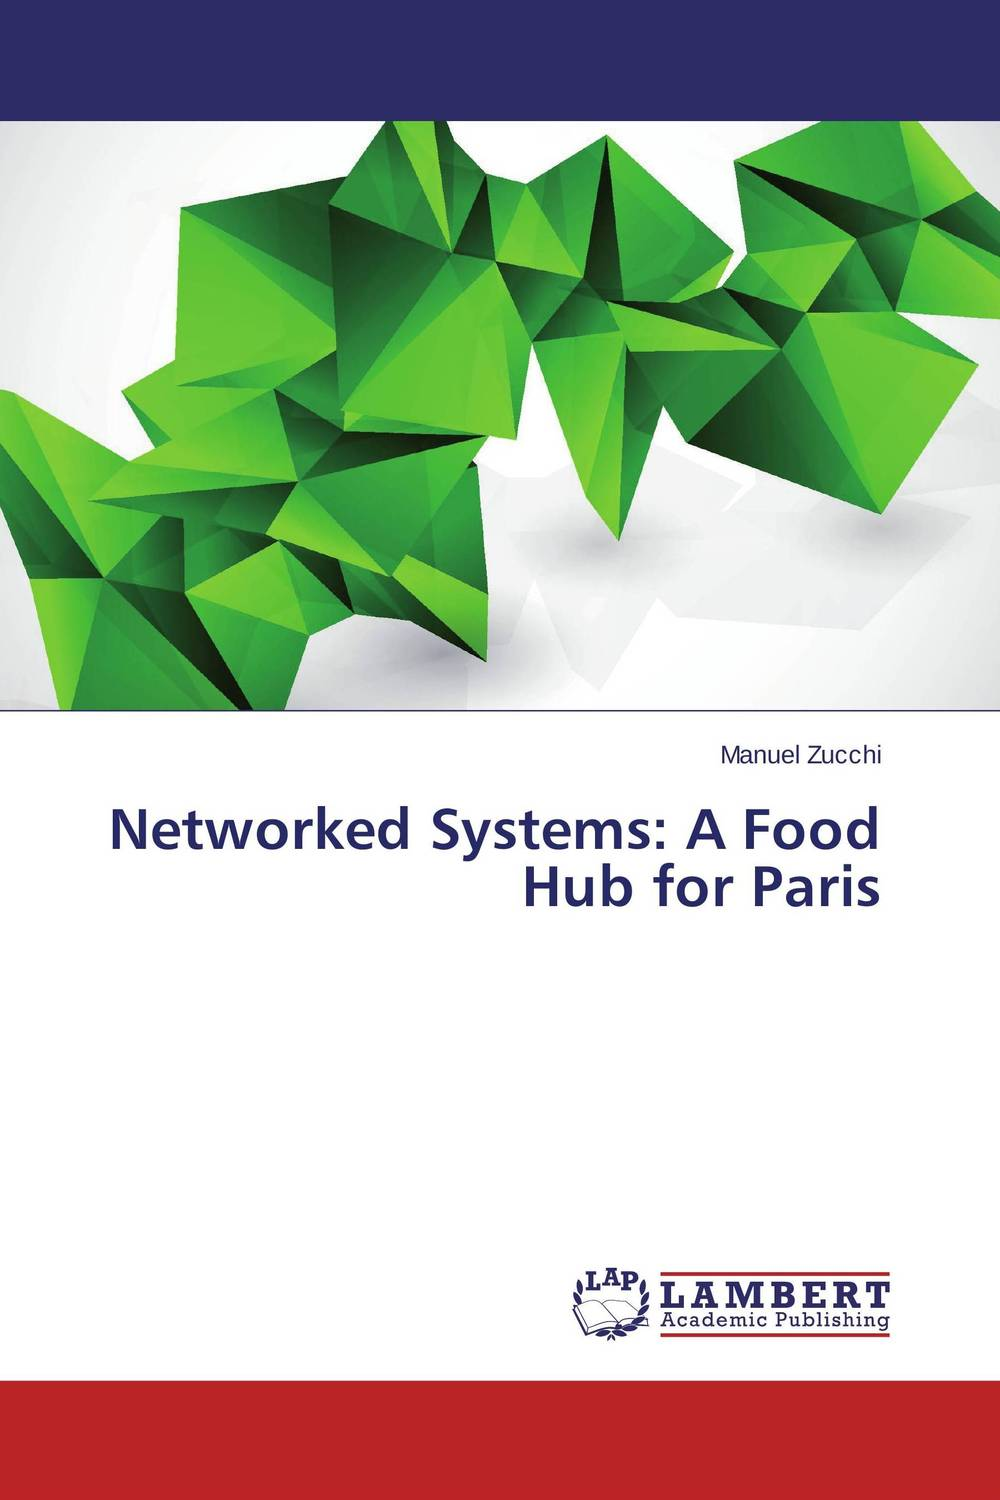 Networked Systems: A Food Hub for Paris driven to distraction